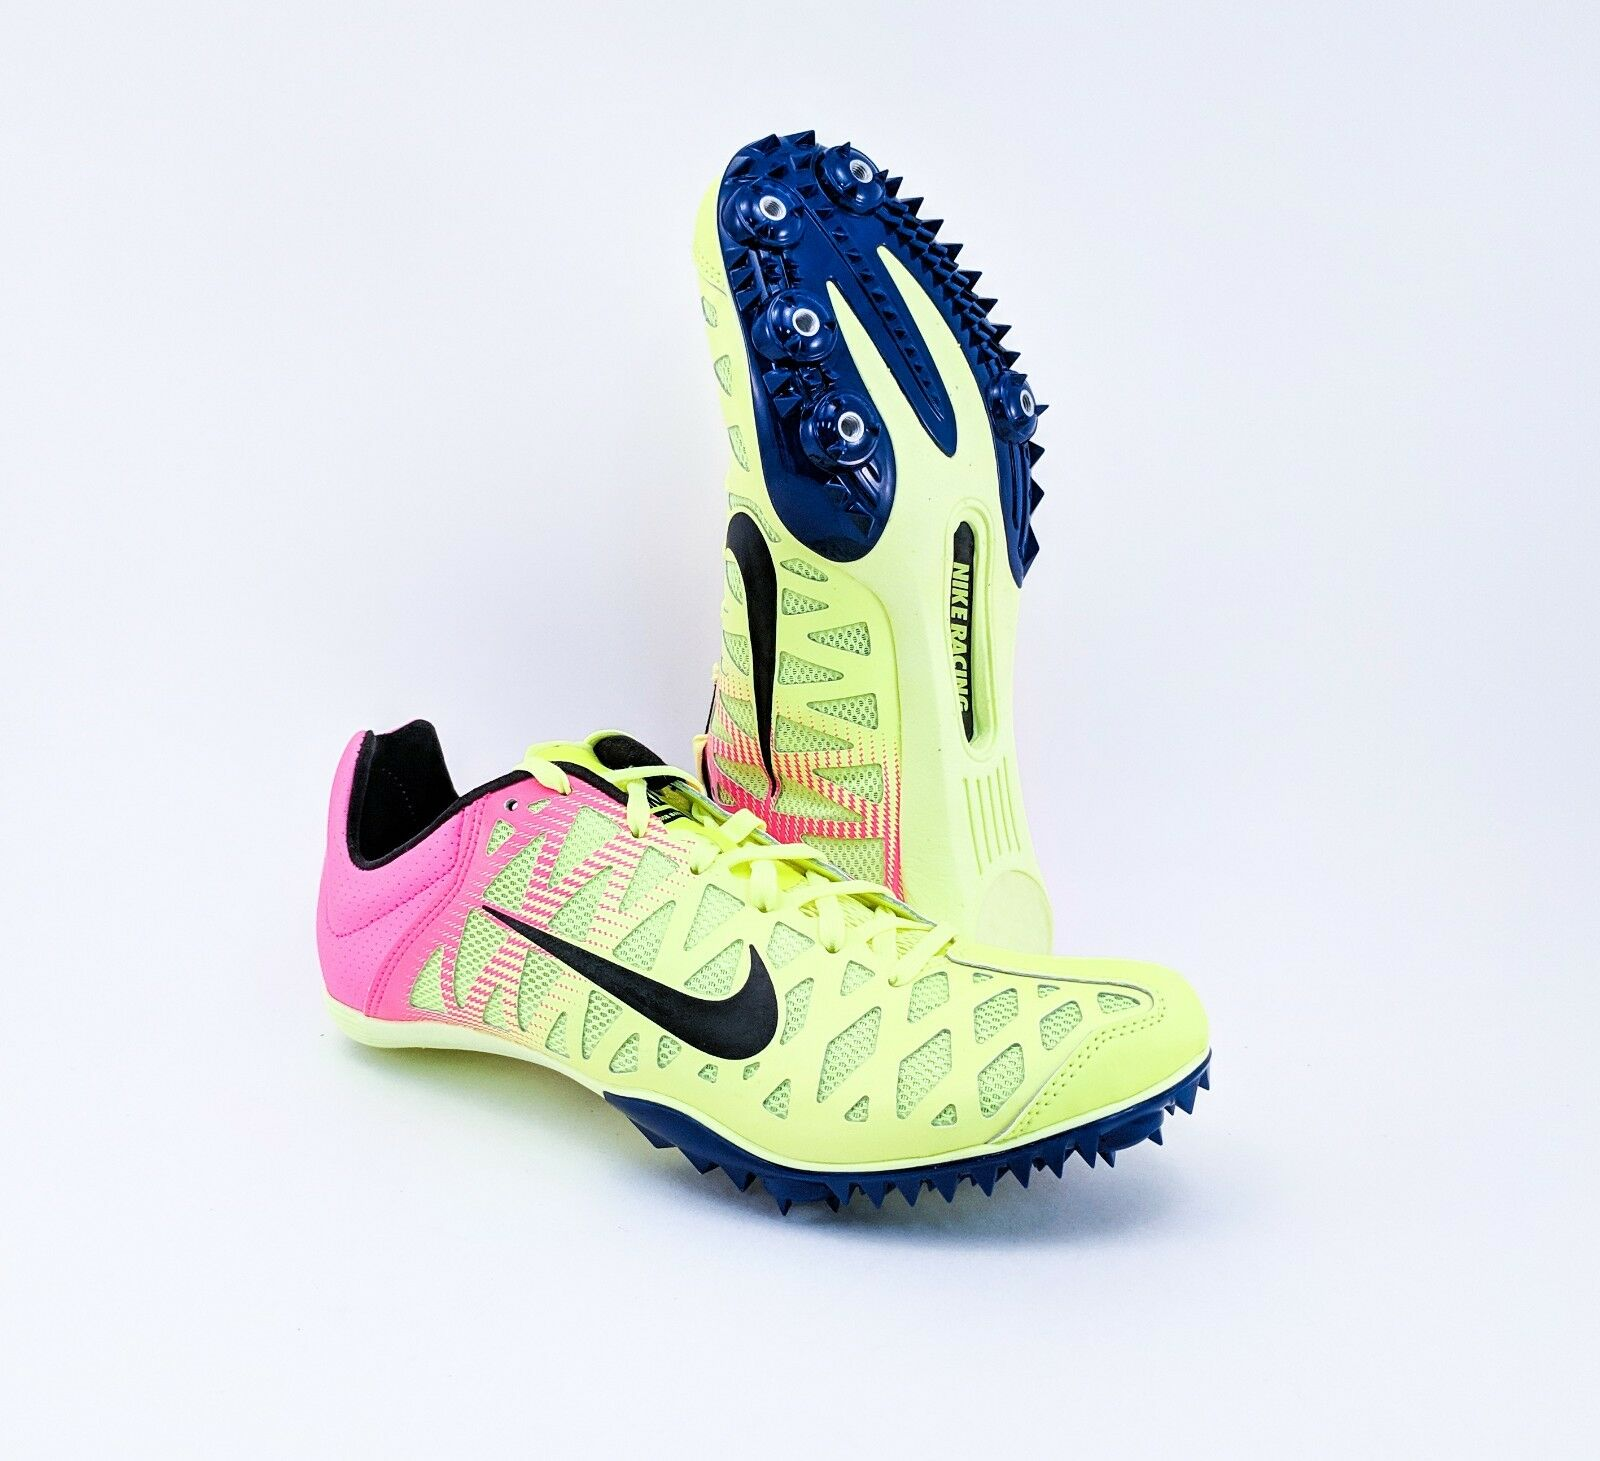 Nike Zoom Maxcat 4 Track shoes Mens Size 10.5 w Spikes 882012-999 FREE PRIORITY